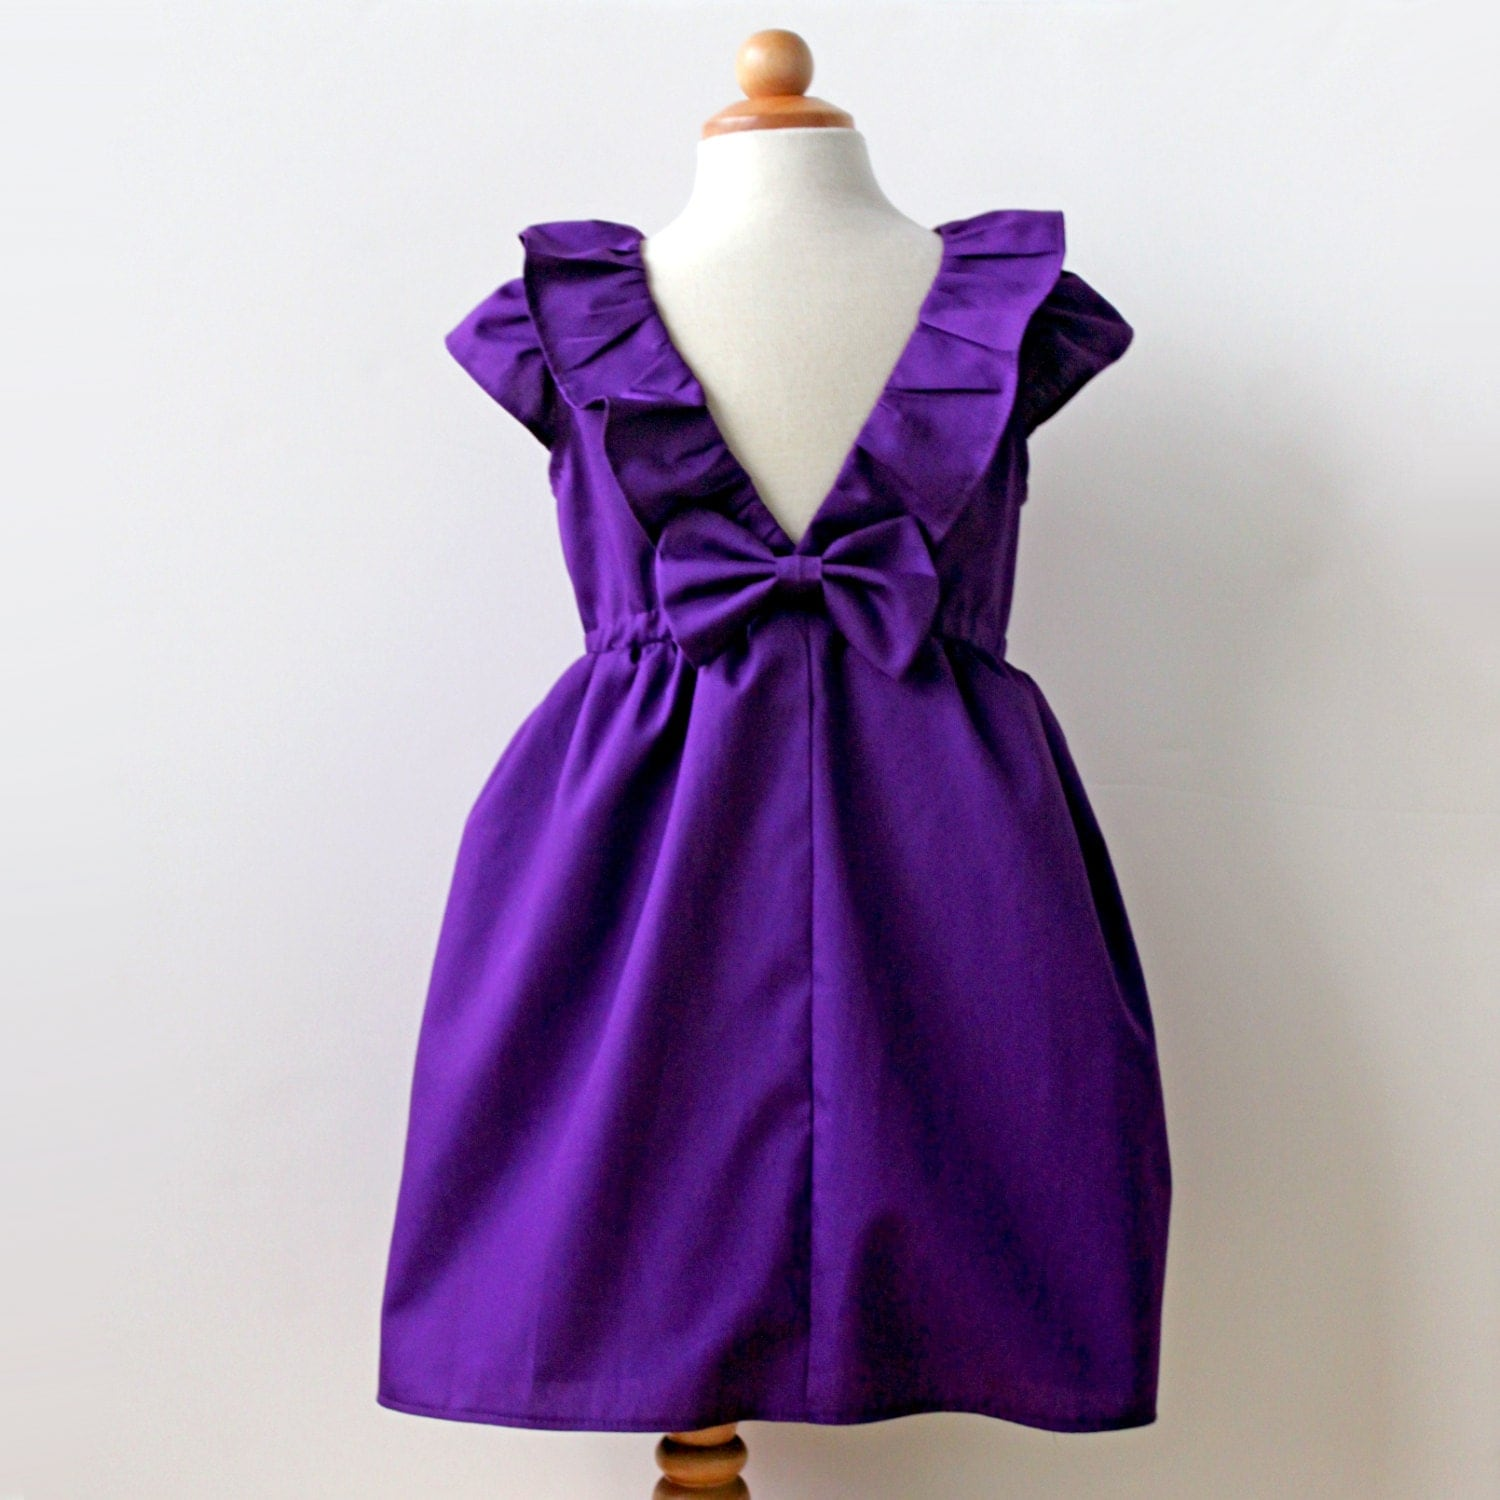 Find great deals on eBay for Purple Toddler Dress in Baby Girls' Dresses (Newborn-5T). Shop with confidence.